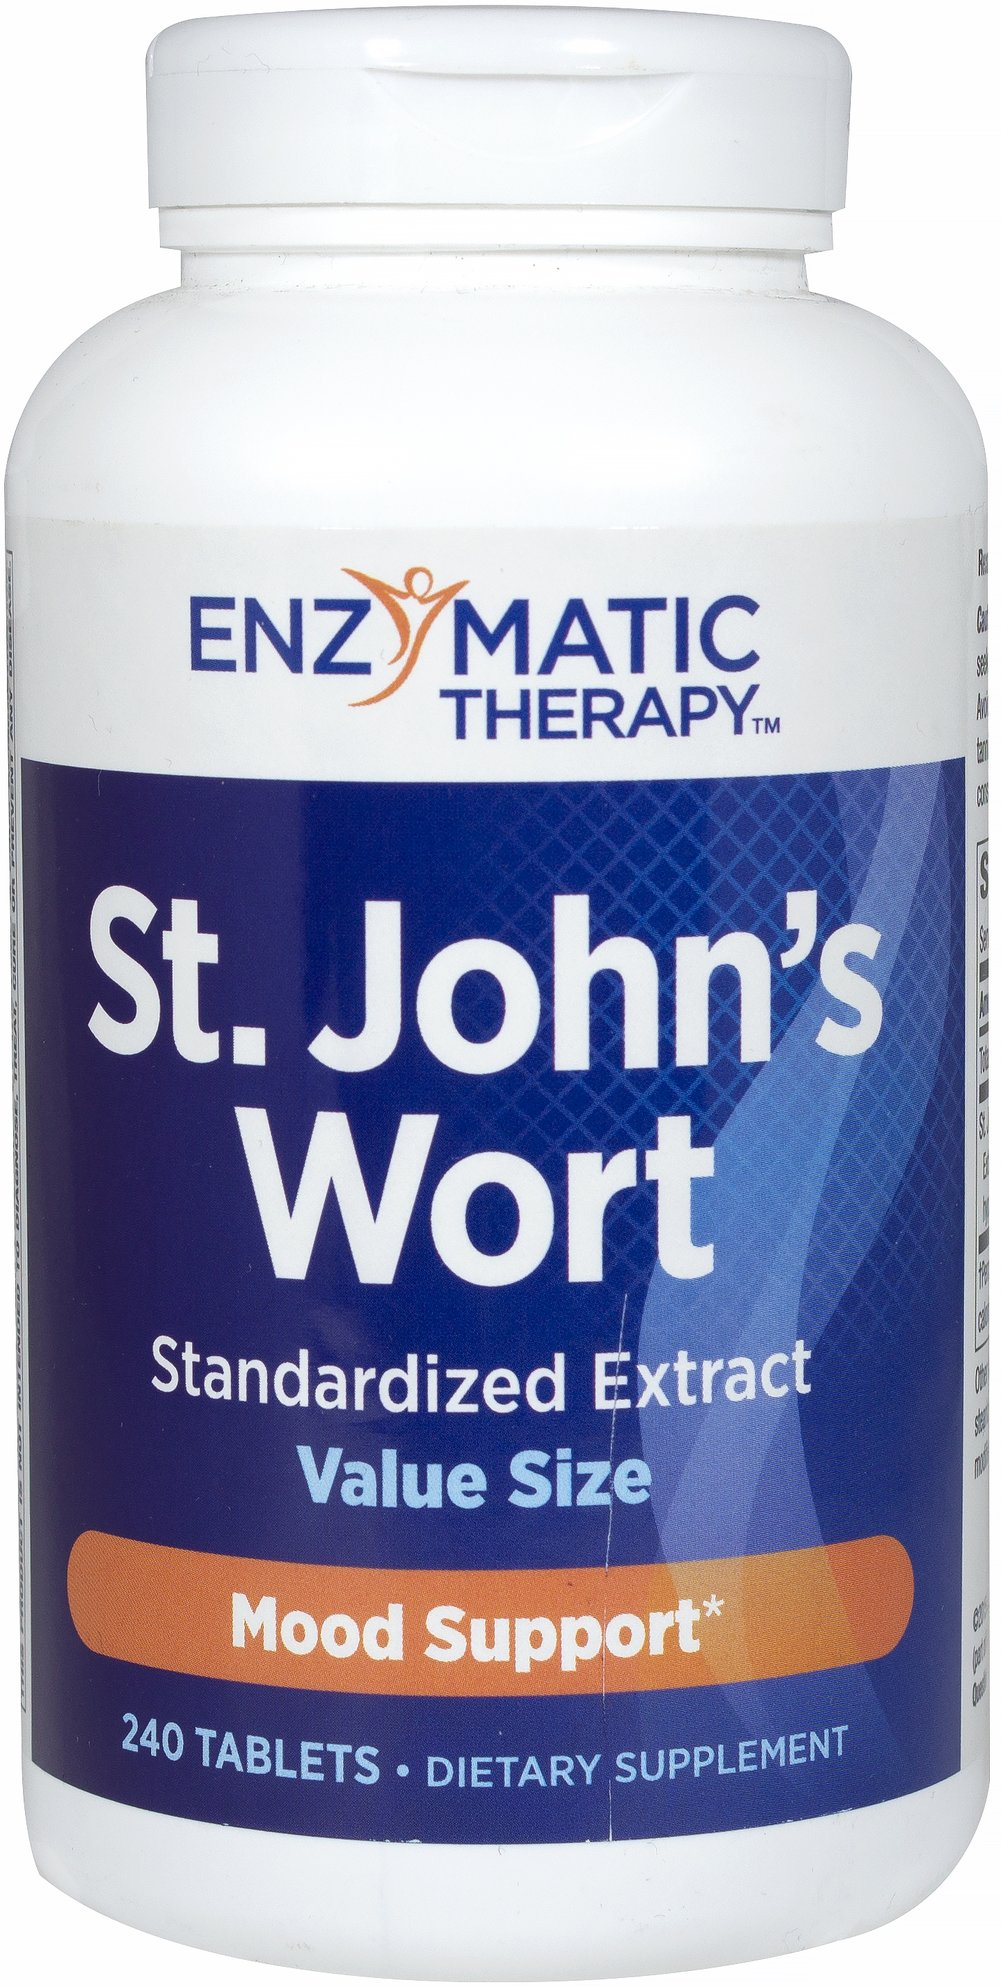 St. John's Wort Extract 450 mg Extra Strength Thumbnail Alternate Bottle View